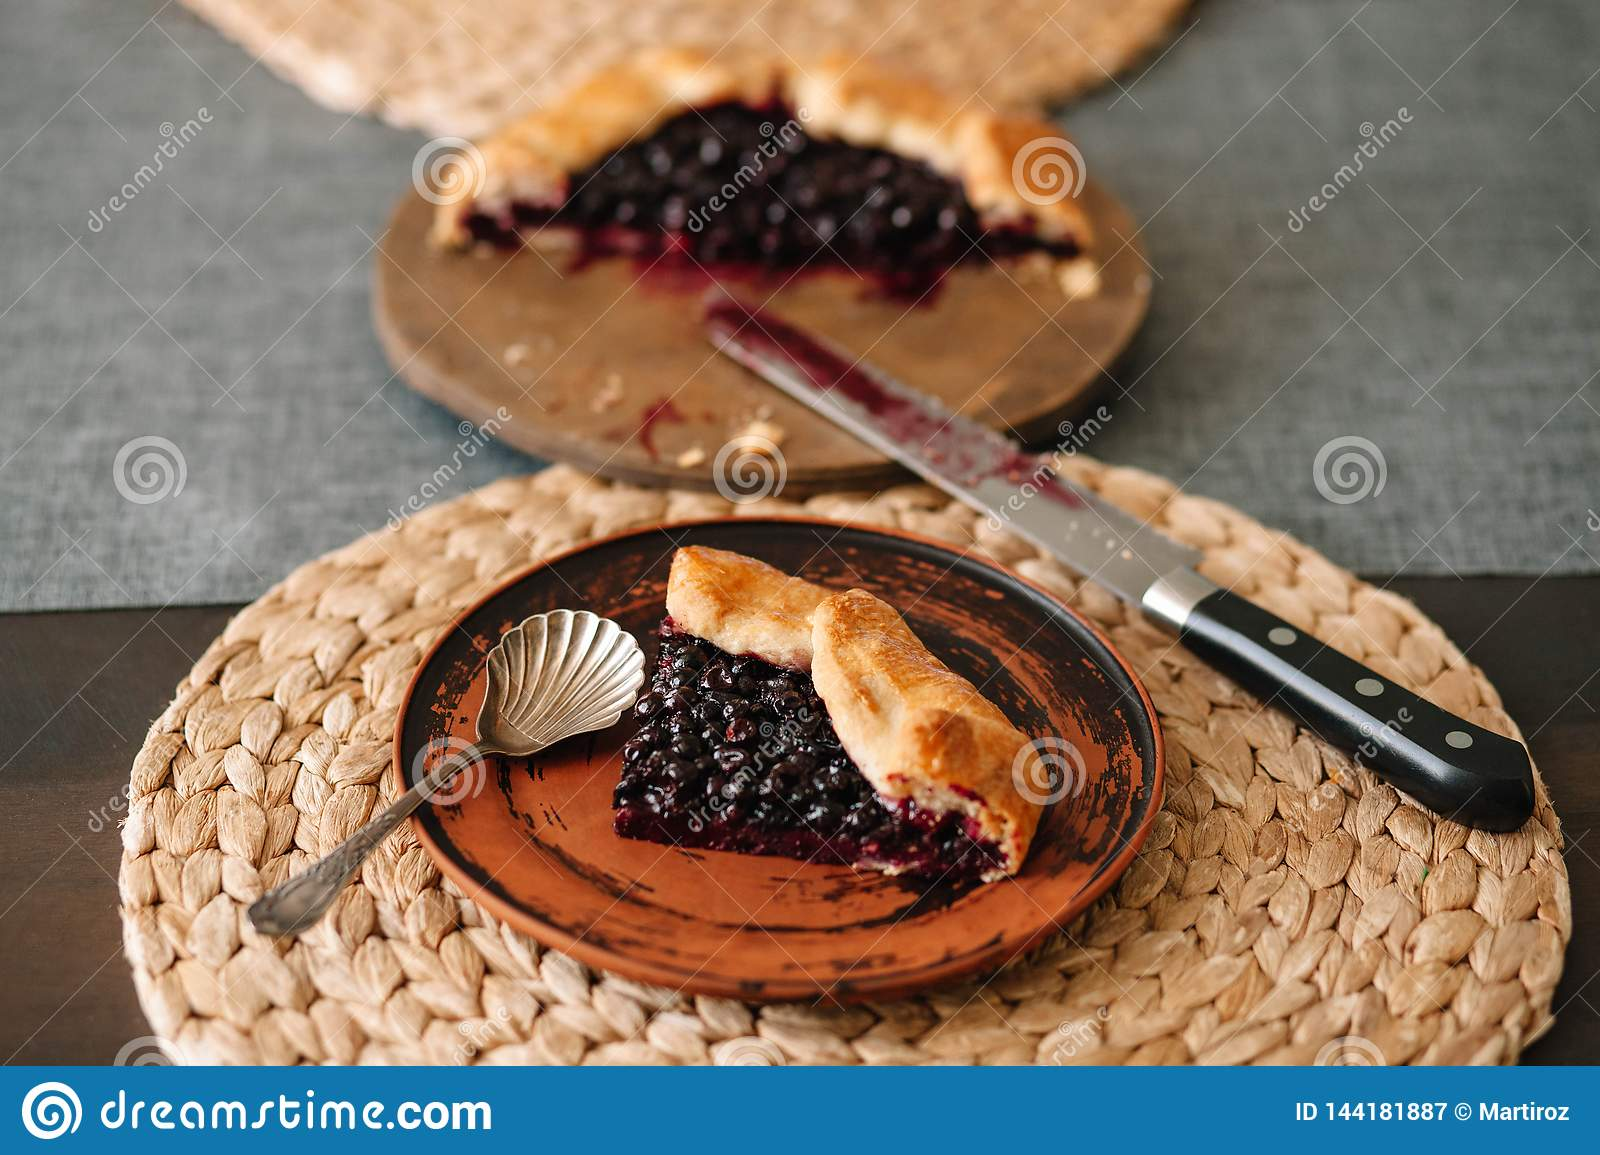 Cutted galette with seasonal berries. Flat lay crispy summer berry pie on a background with copy space